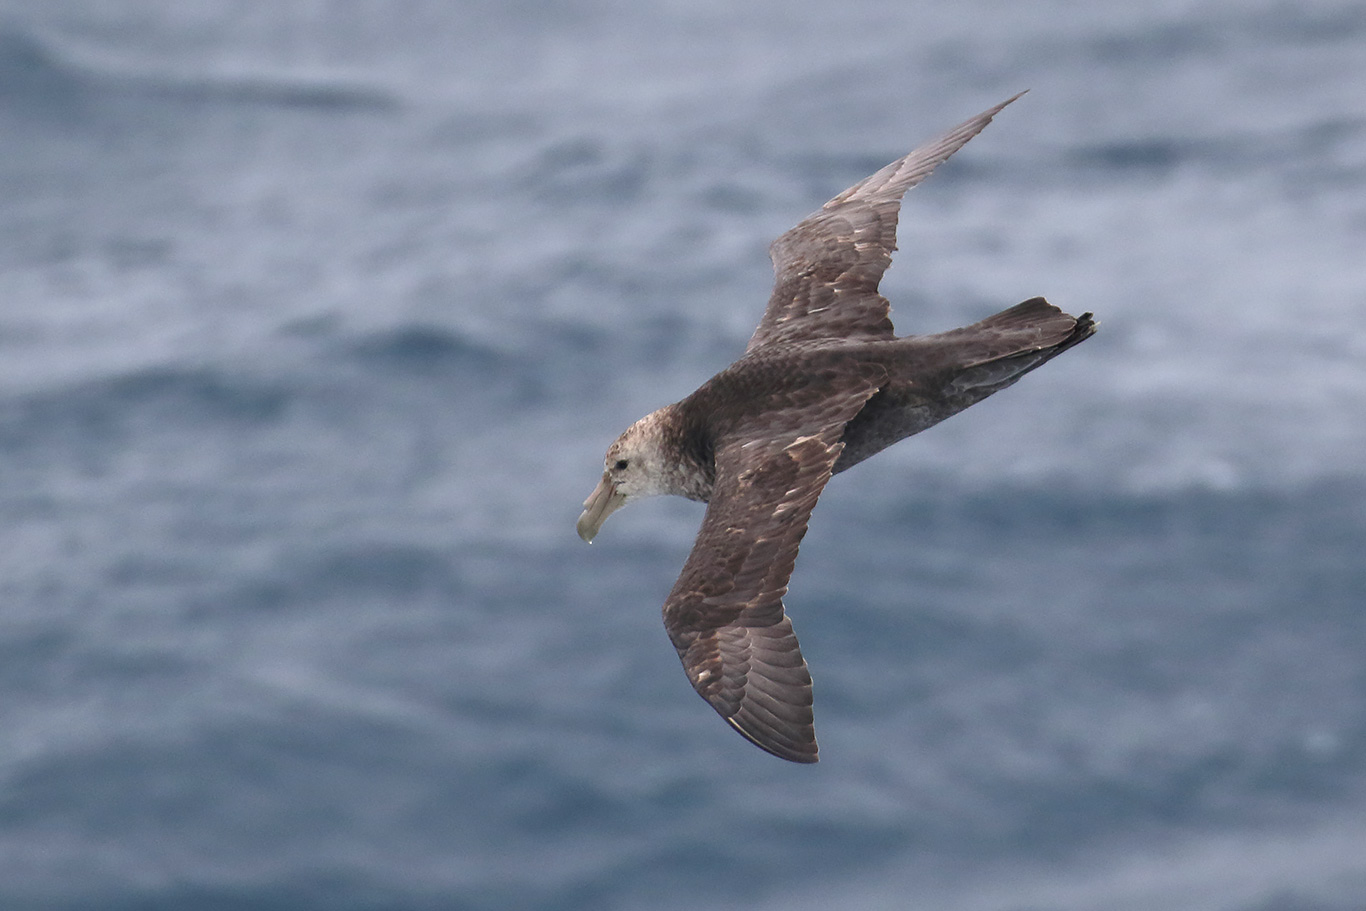 Southern Giant Petrel, At sea, south of Falkland Islands and north of Antarctica, South Atlantic Ocean.